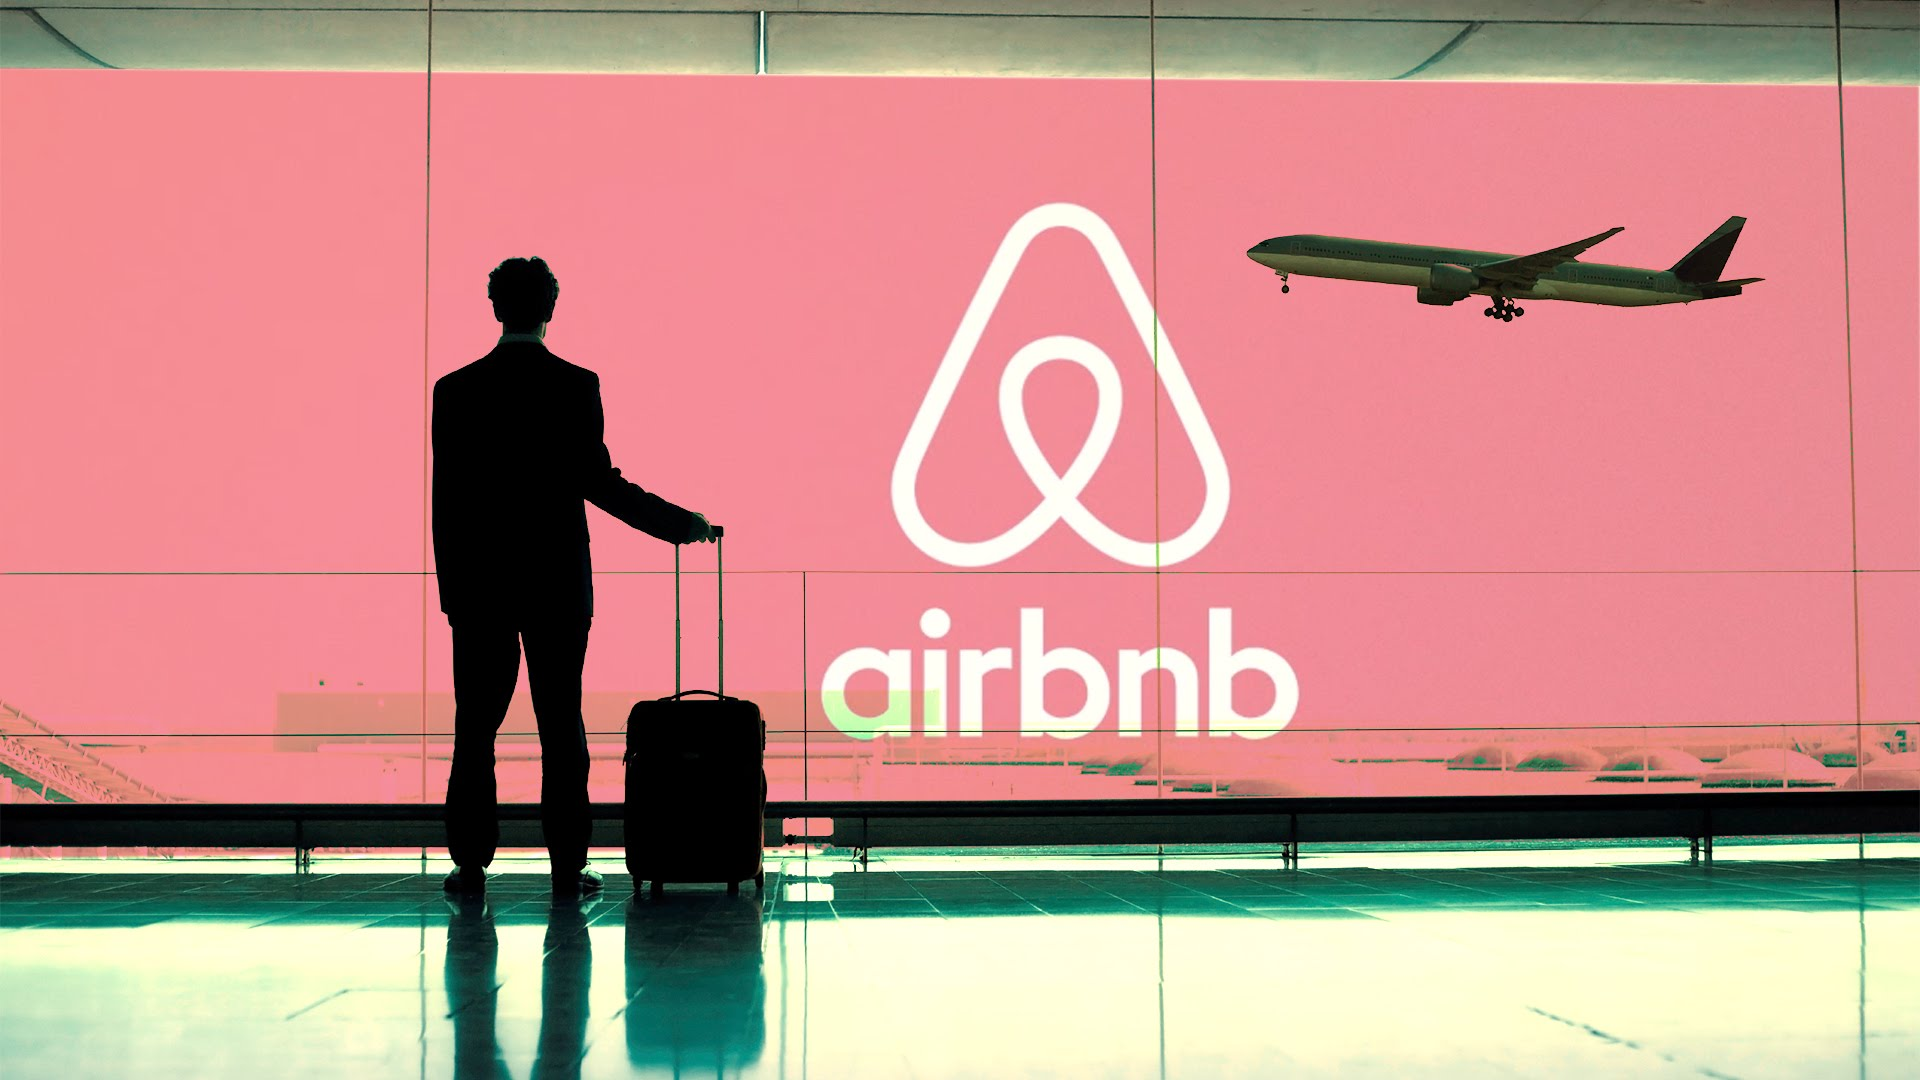 Airbnb adds loyalty program, site inspections as new rules restrict core business